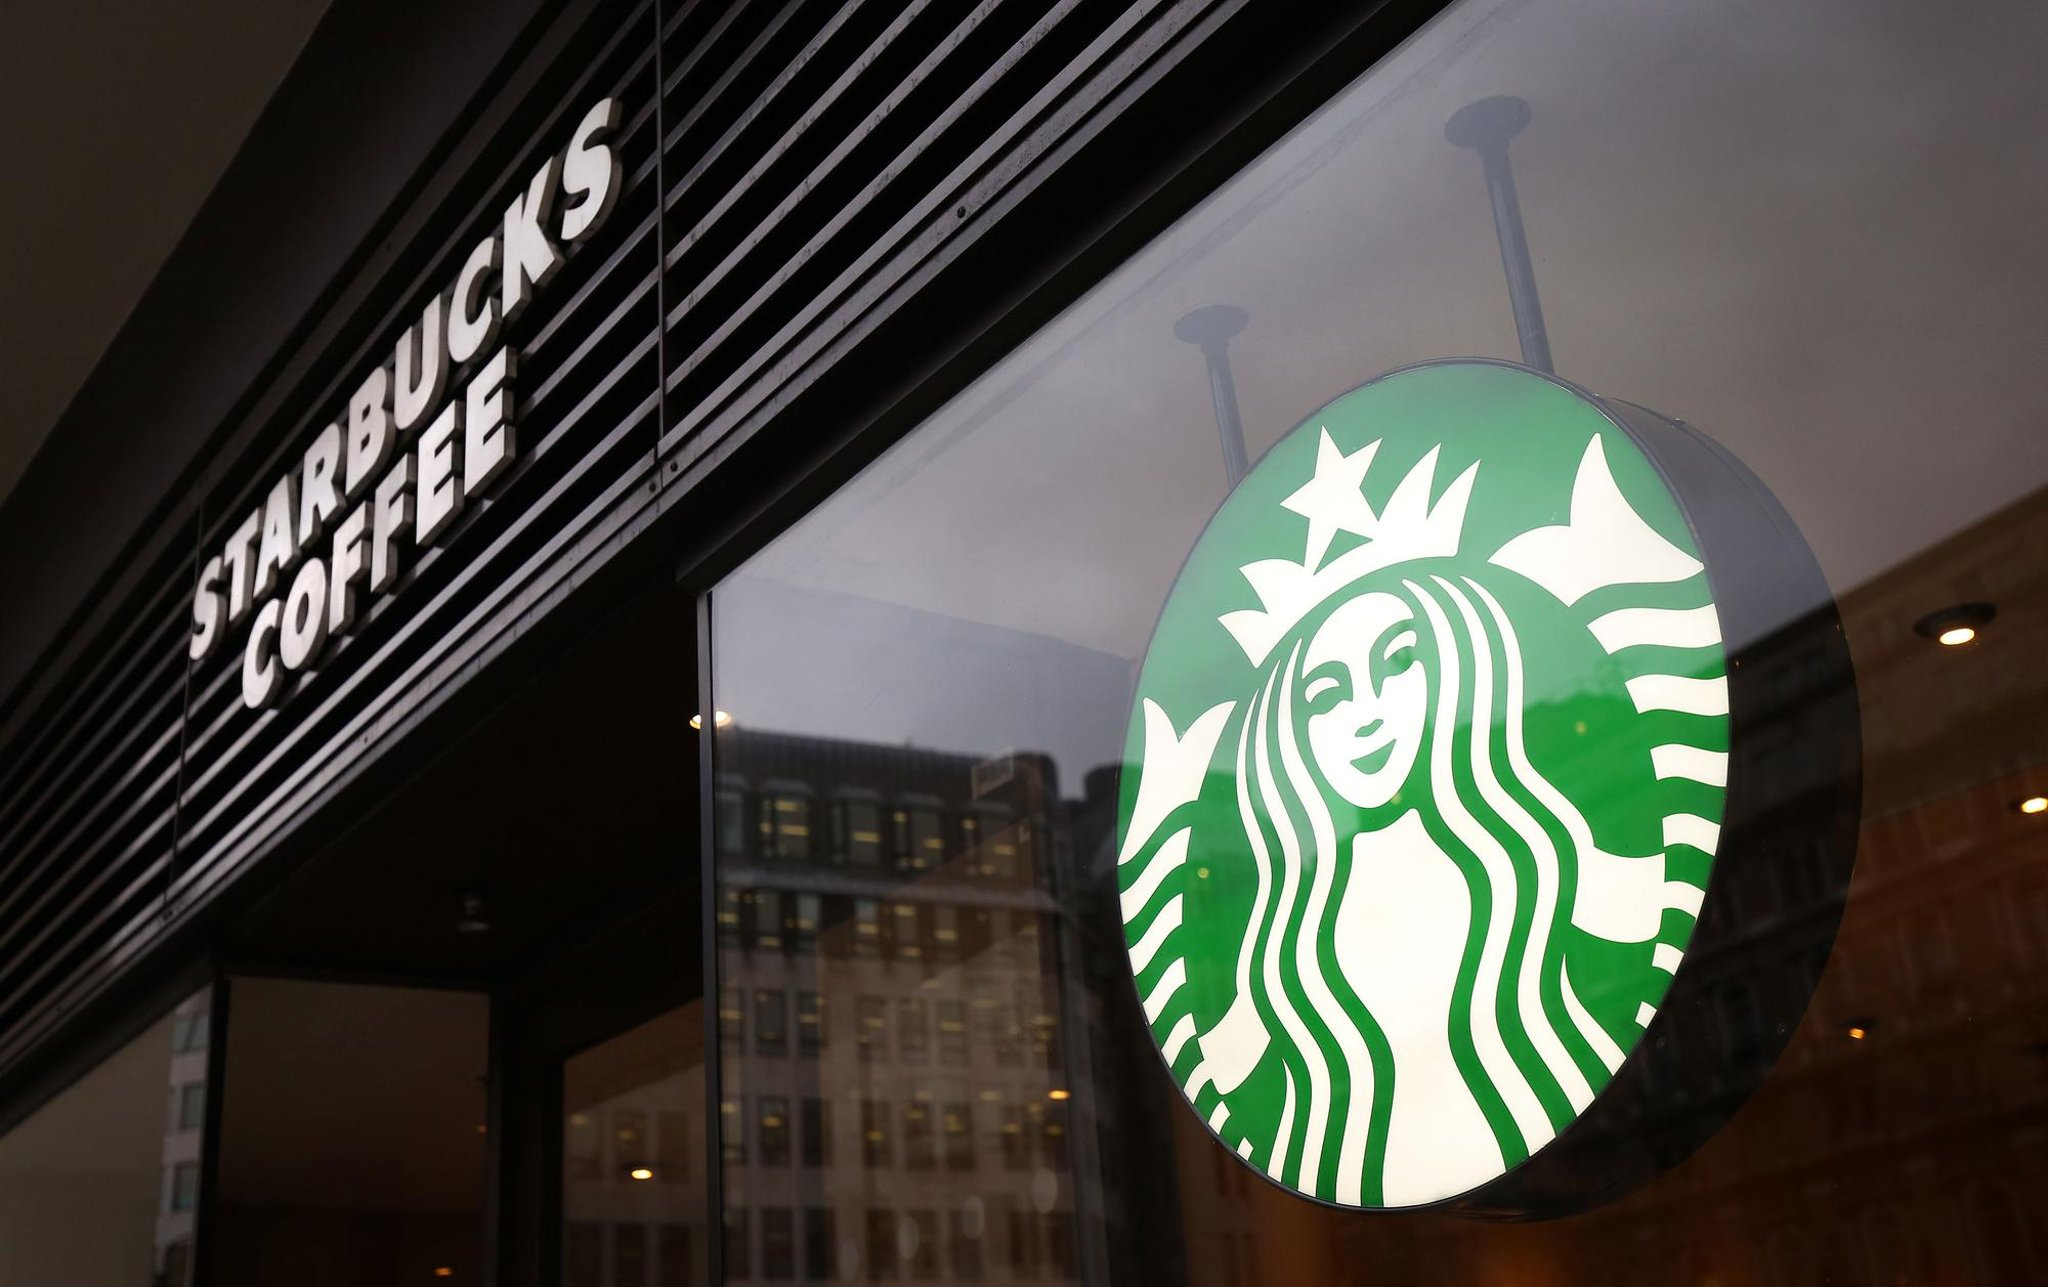 Starbucks creates 400 jobs across UK towns and cities as coffee giant awaits 'busy summer '